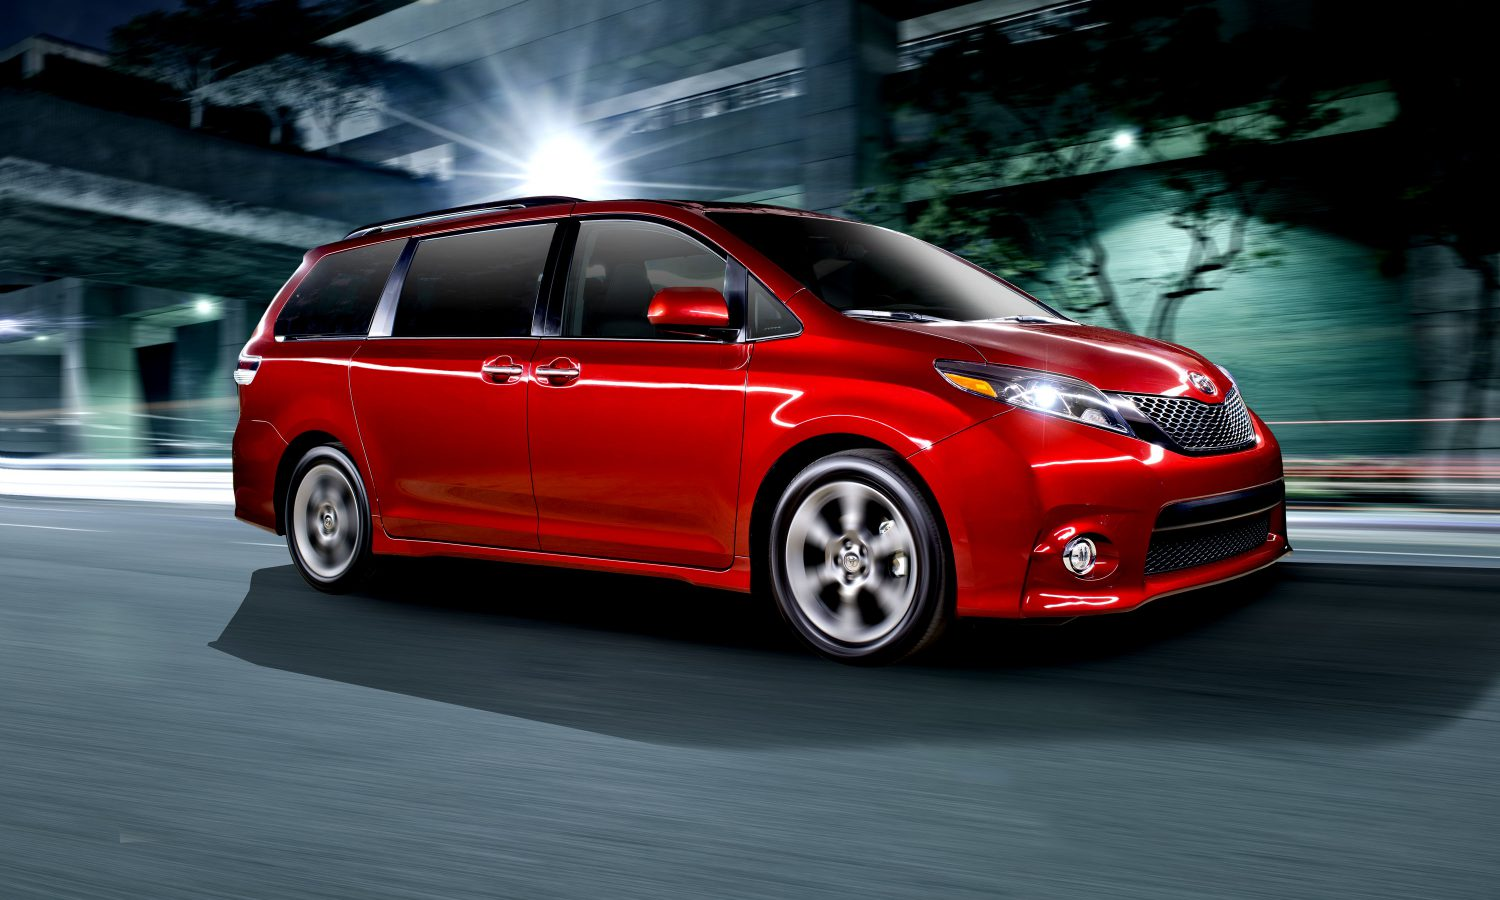 toyota announces pricing for new 2015 sienna minivan toyota usa newsroom 2015 sienna minivan